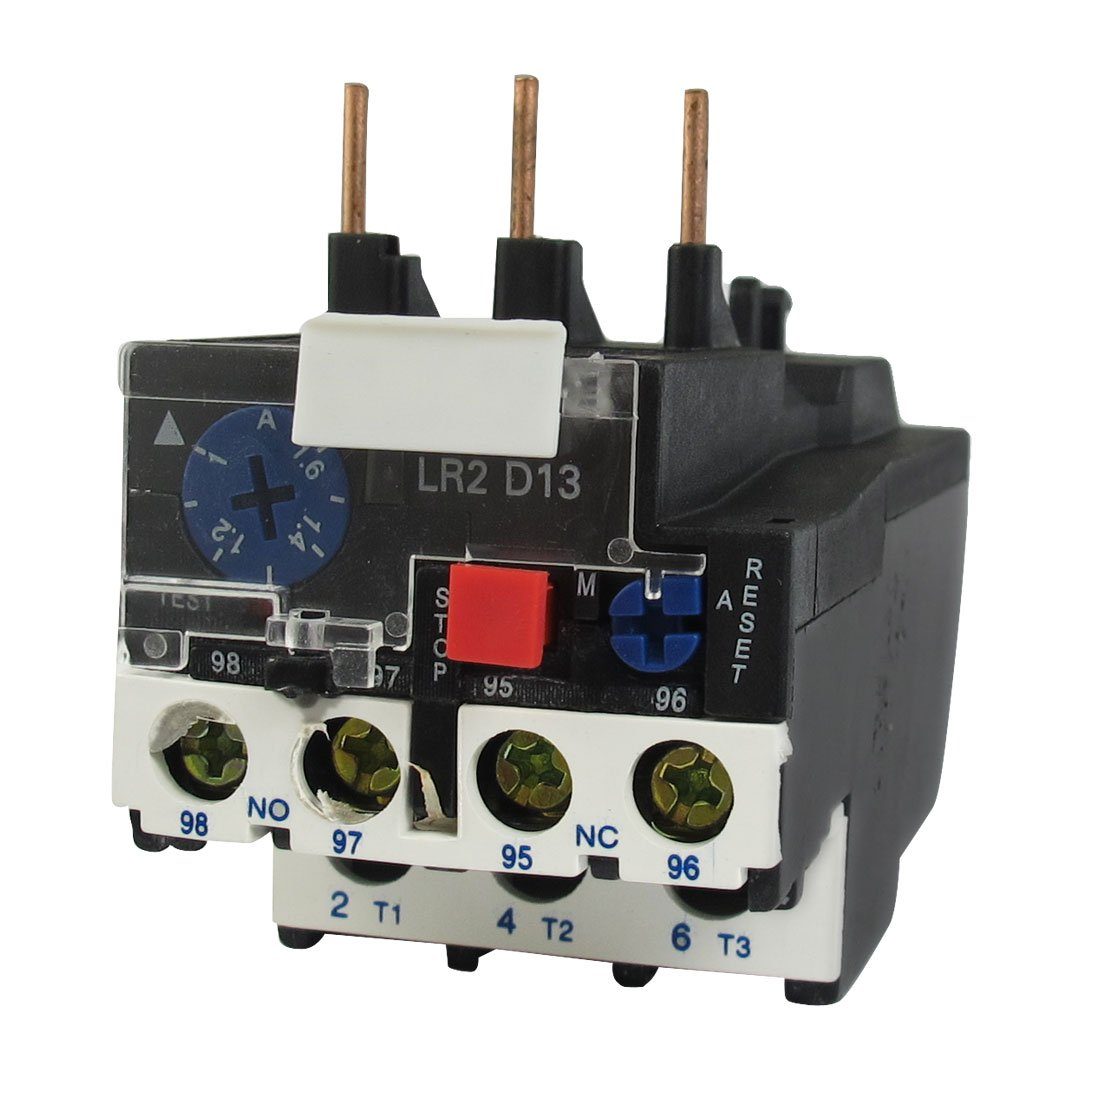 LR2-13 1.6A 1-1.6A 3-Phase 1NO 1NC Electric Thermal Overload Relay 2 pin thermal overload protection